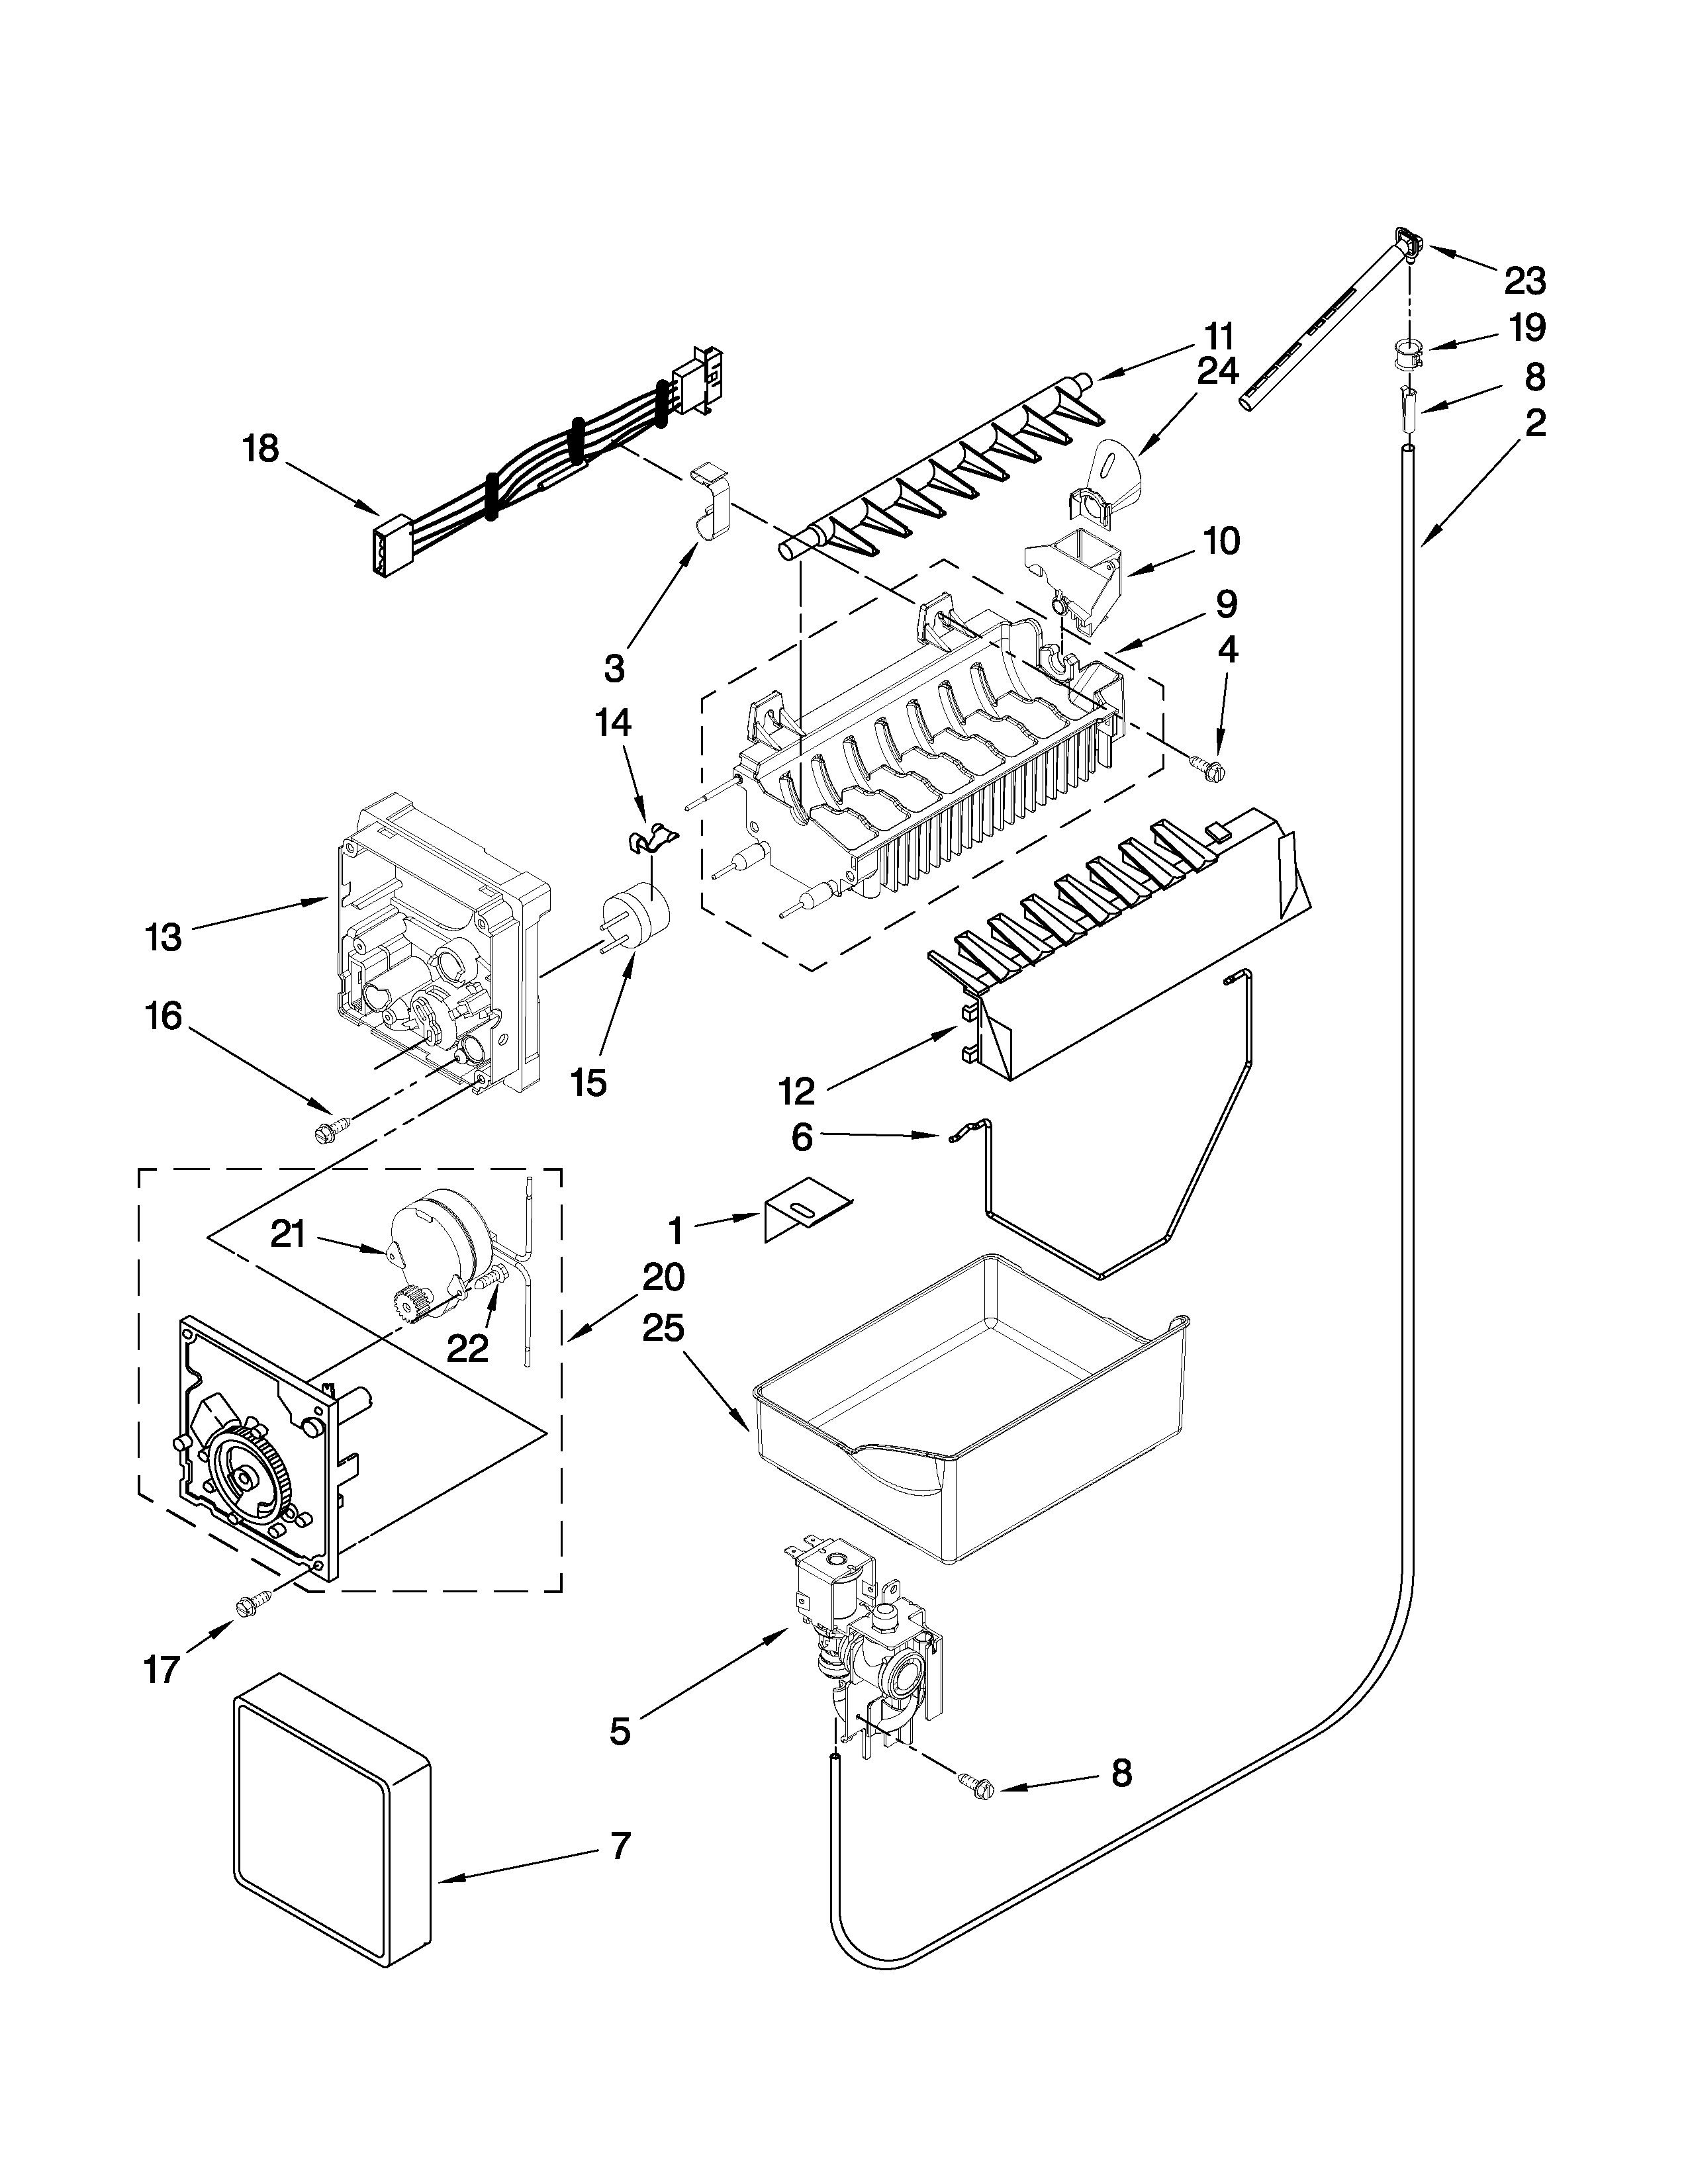 Maytag MBF1958XEB0 icemaker parts diagram